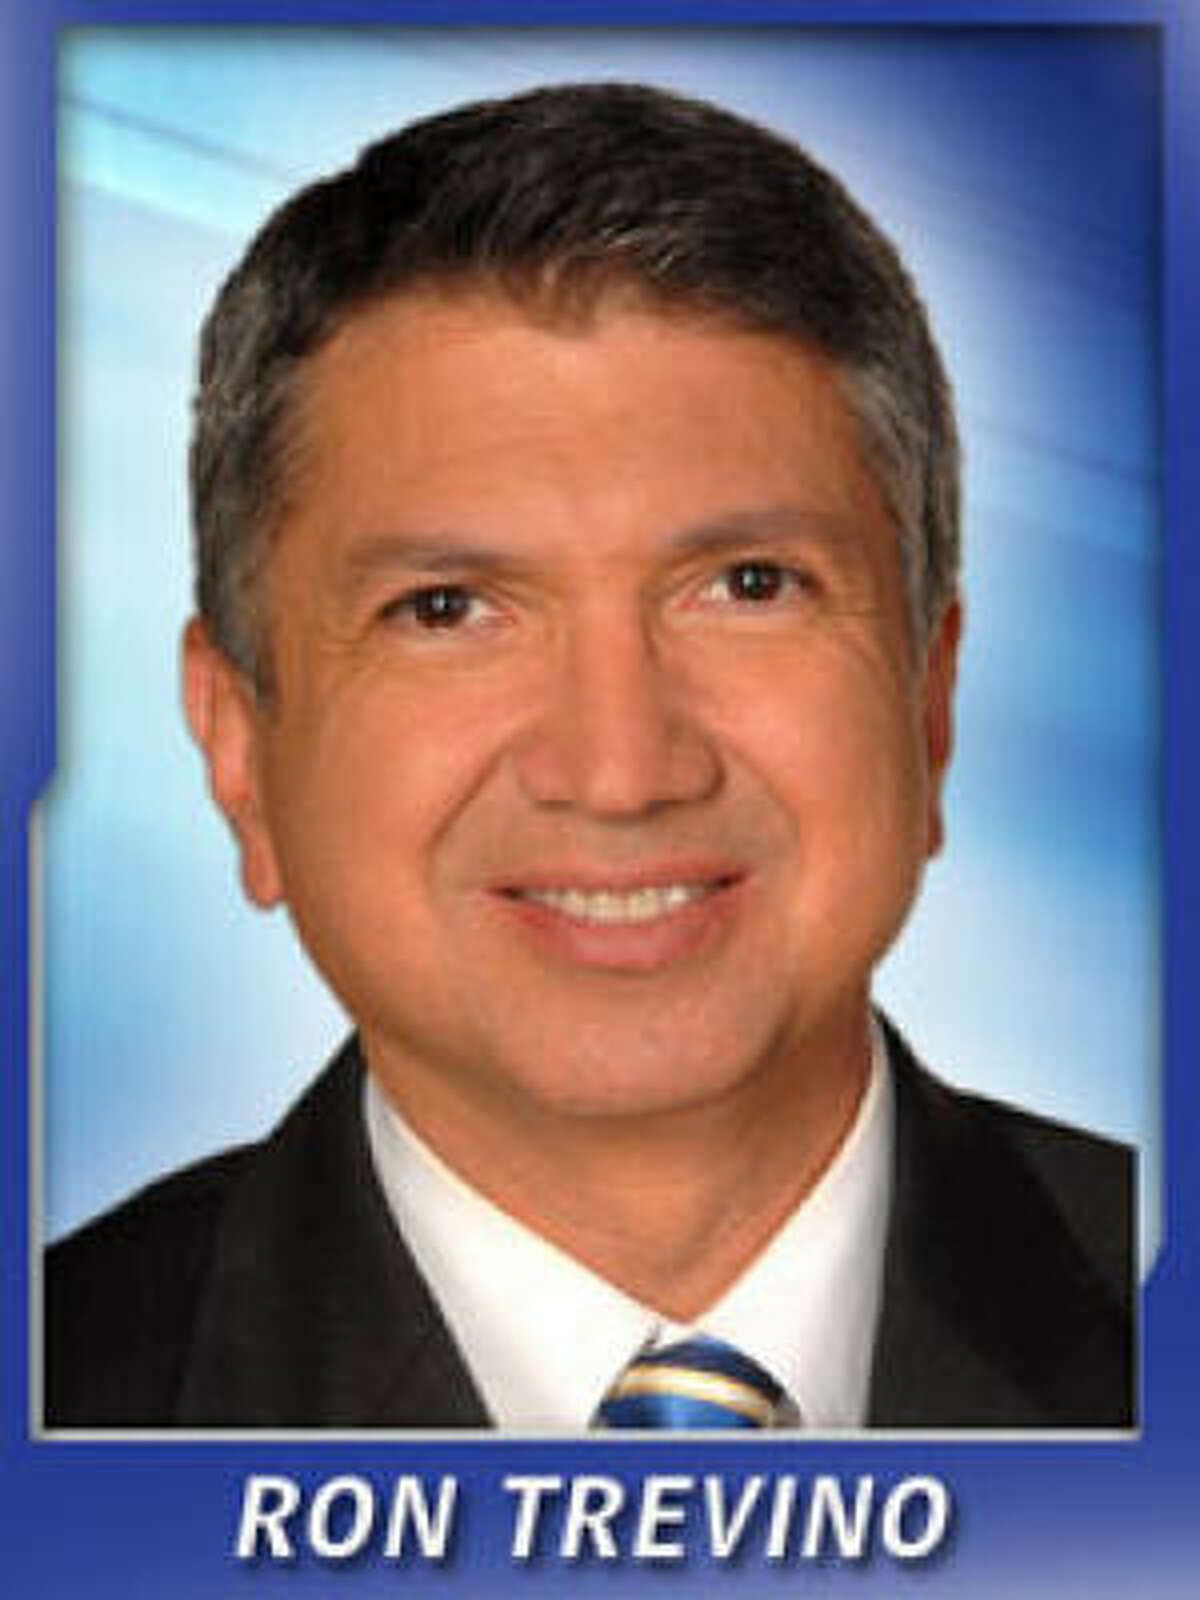 Channel 11 anchor Ron Trevino is giving up selfishness and will do more charitable work.